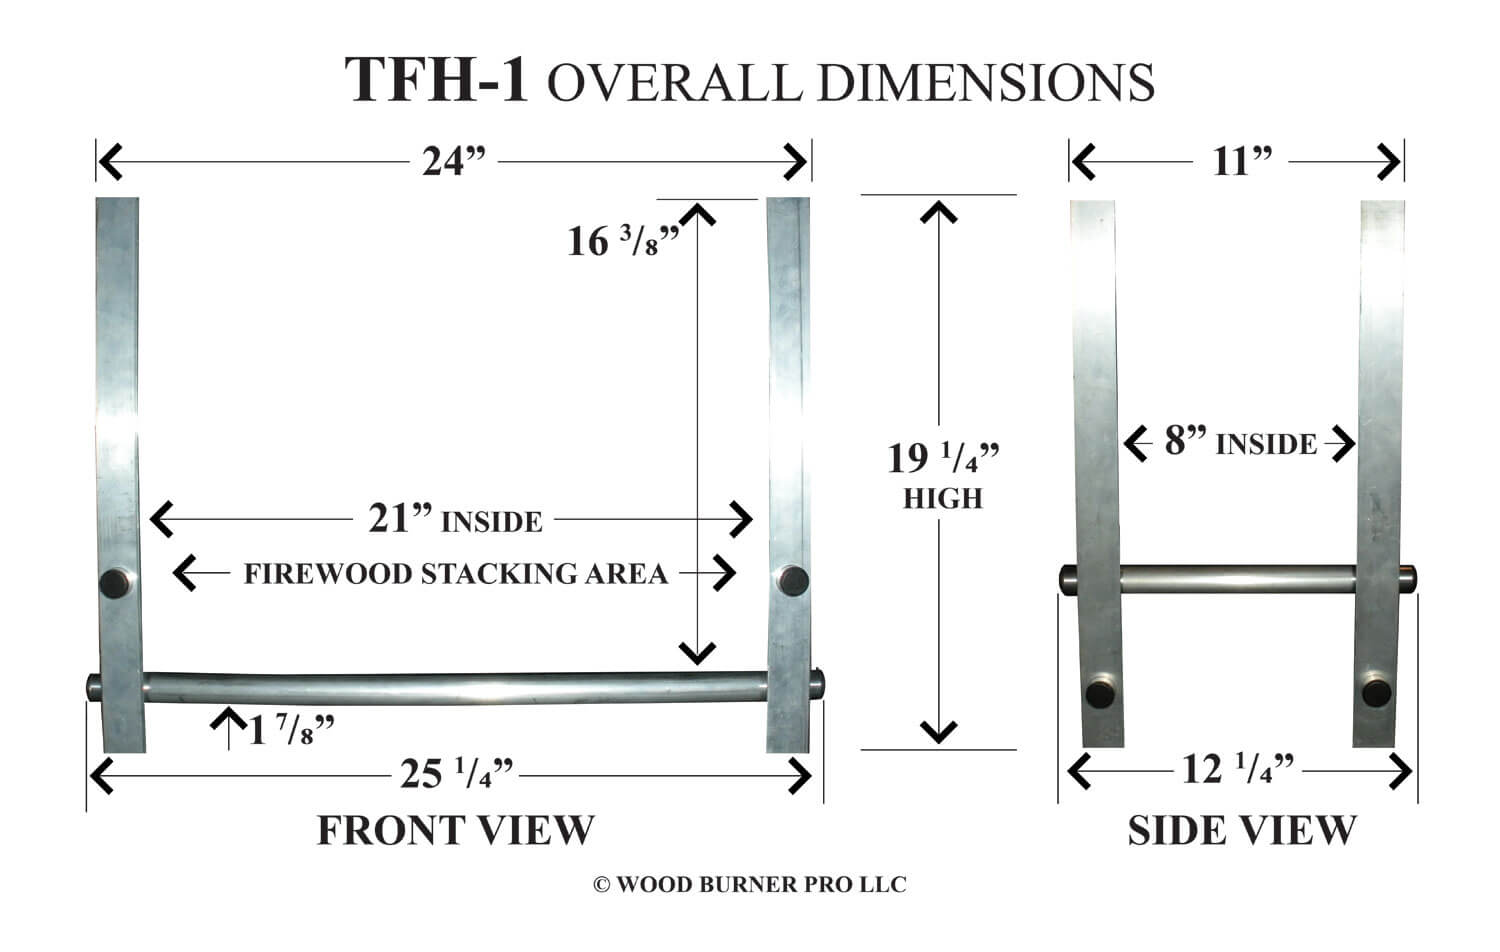 image of aluminum firewood holder frame showing overall dimensions